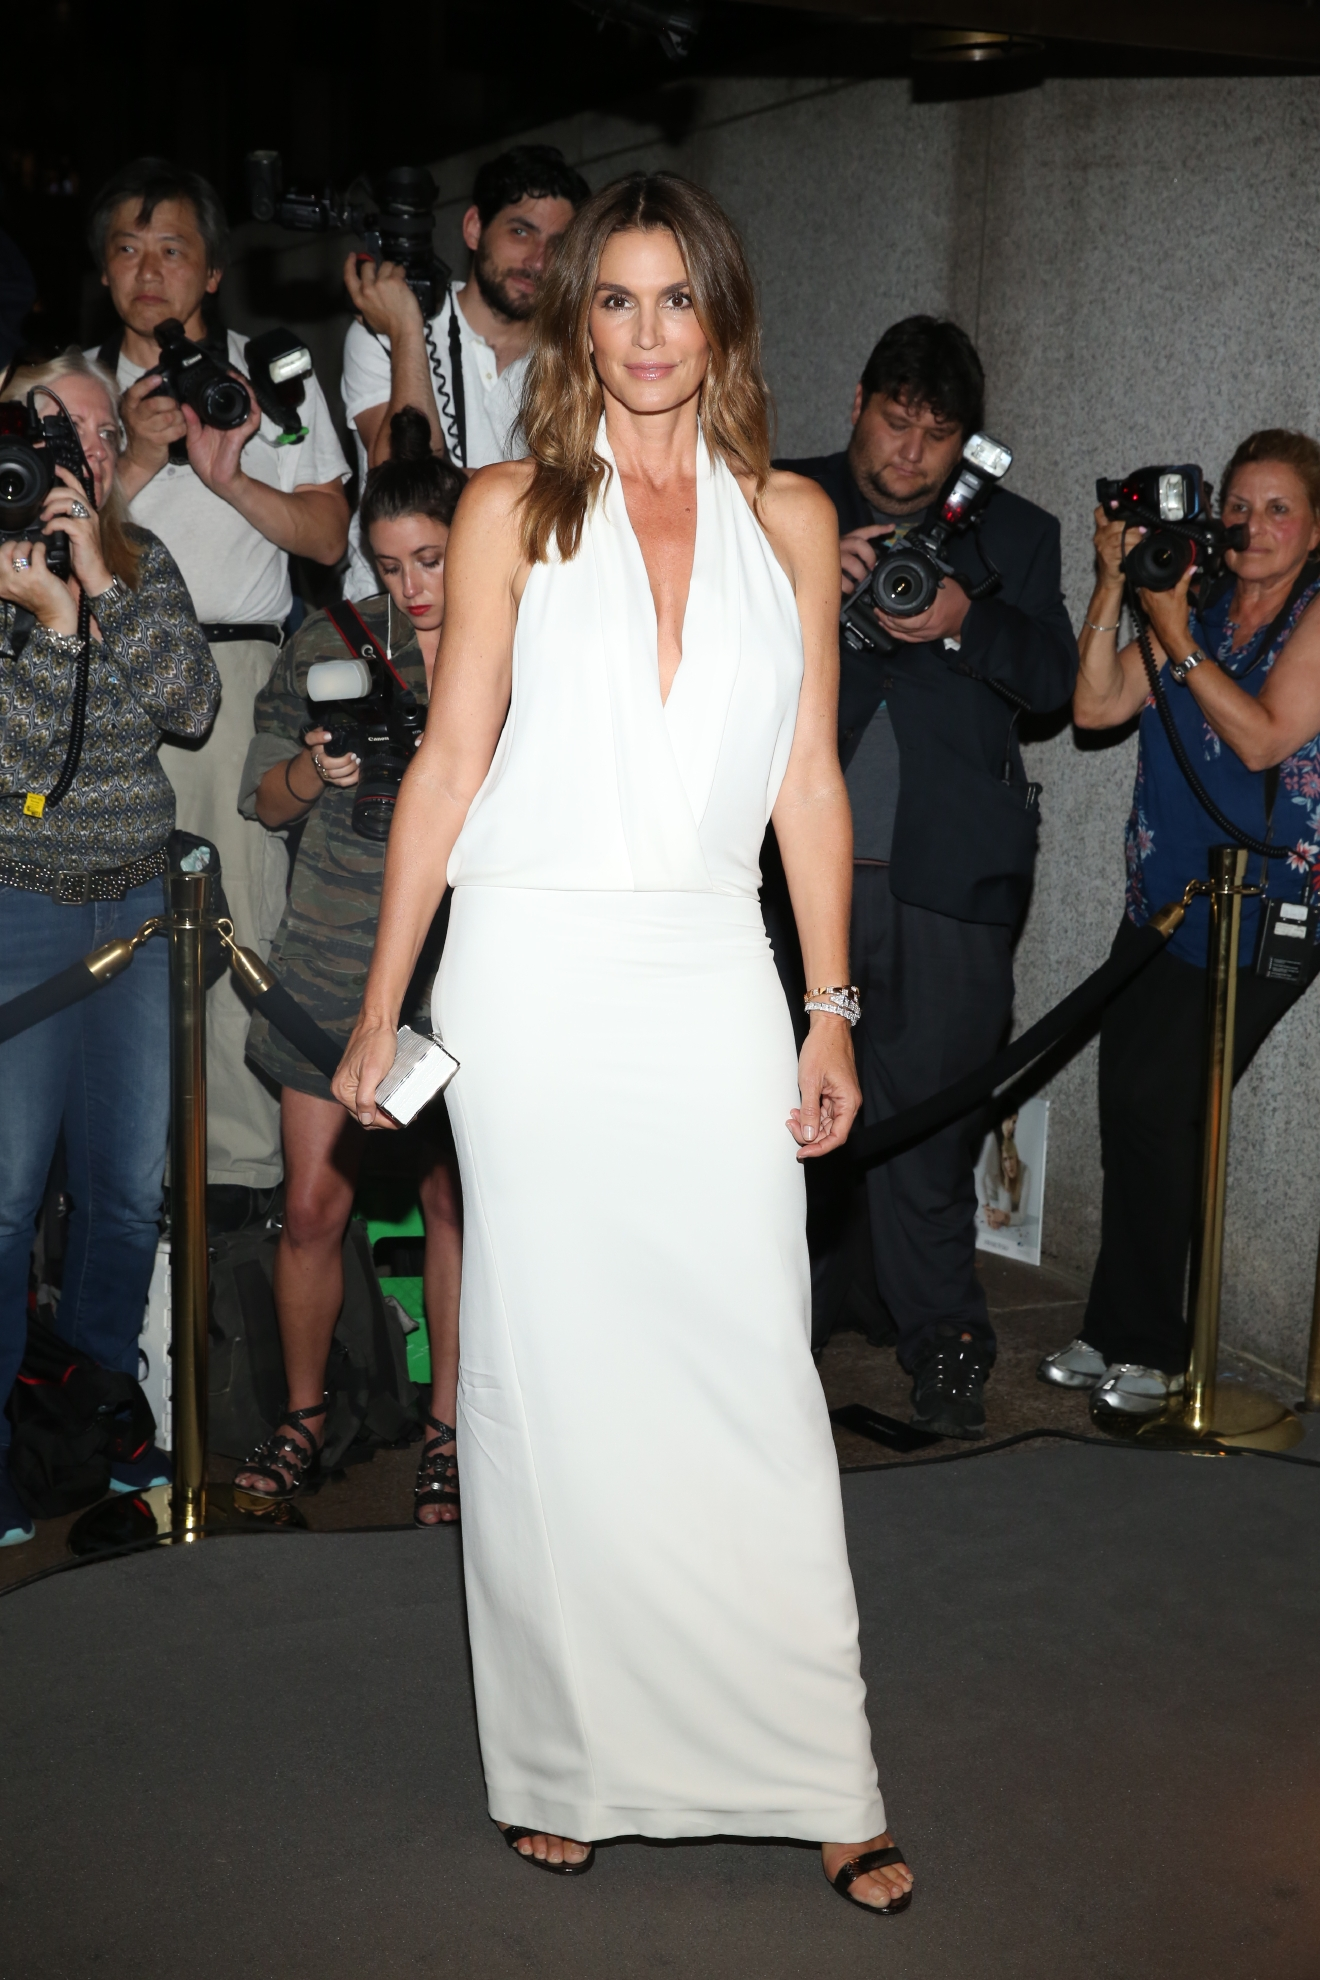 New York Fashion Week September 2016 - Men's and Women's SS17 - Tom Ford - Presentation Arrivals  Featuring: Cindy Crawford Where: New York, New York, United States When: 07 Sep 2016 Credit: Jeff Grossman/WENN.com